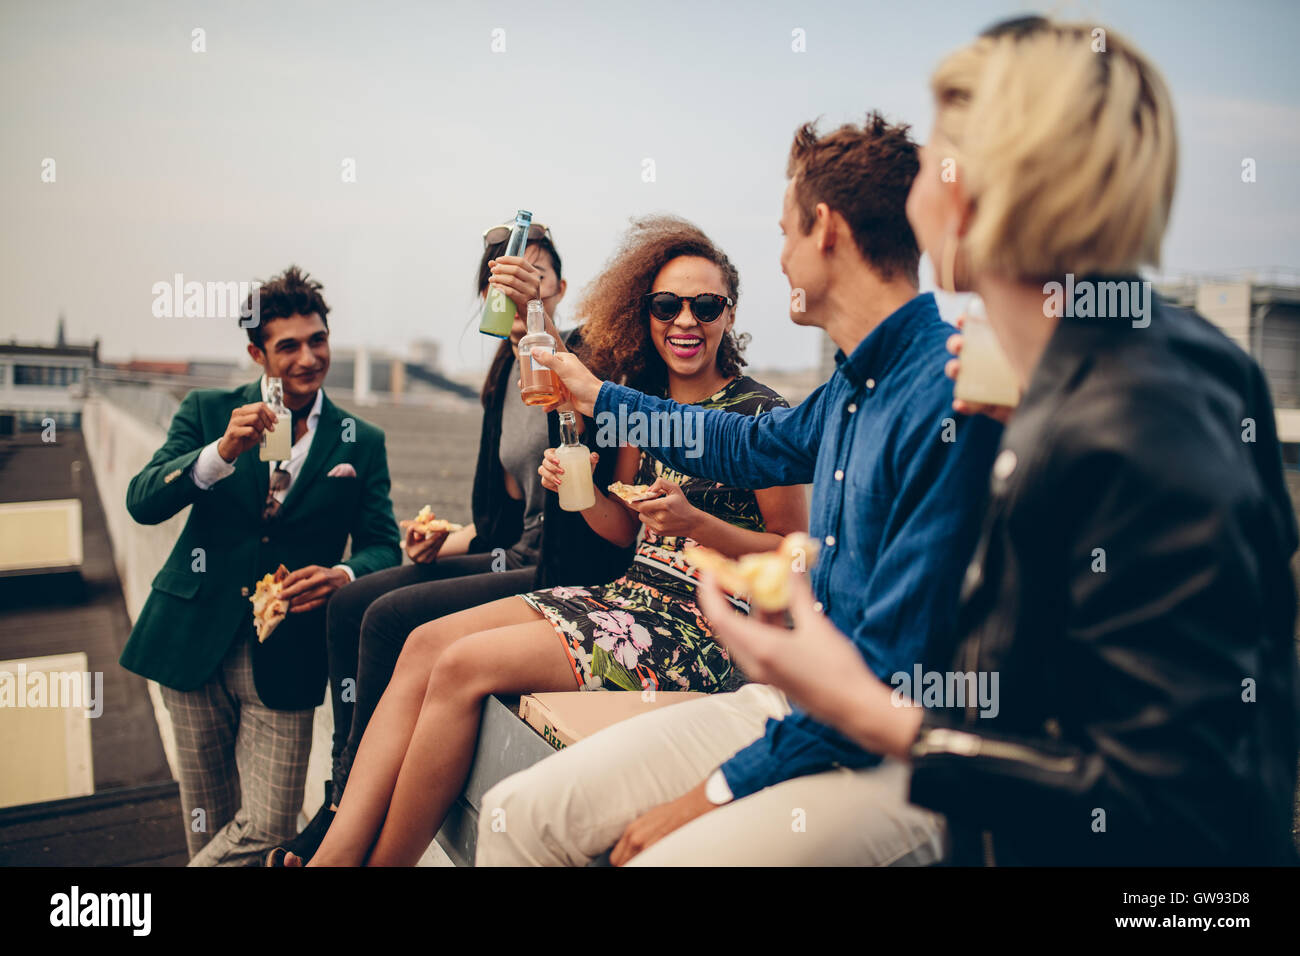 Multiethnic group of young friends partying on terrace for The terrace group